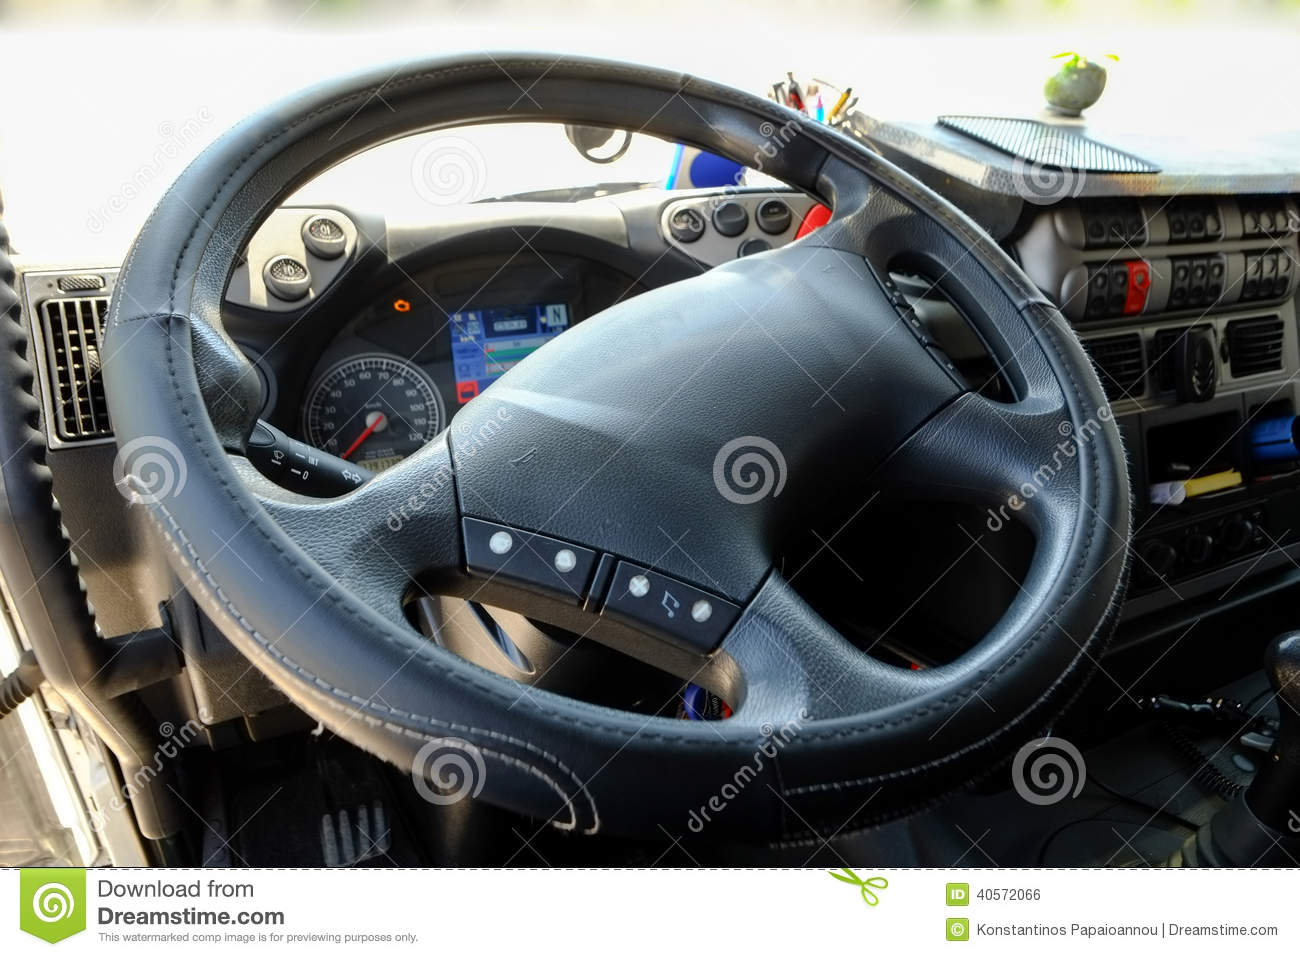 Steering wheel in a truck stock photo  Image of switches - 40572066